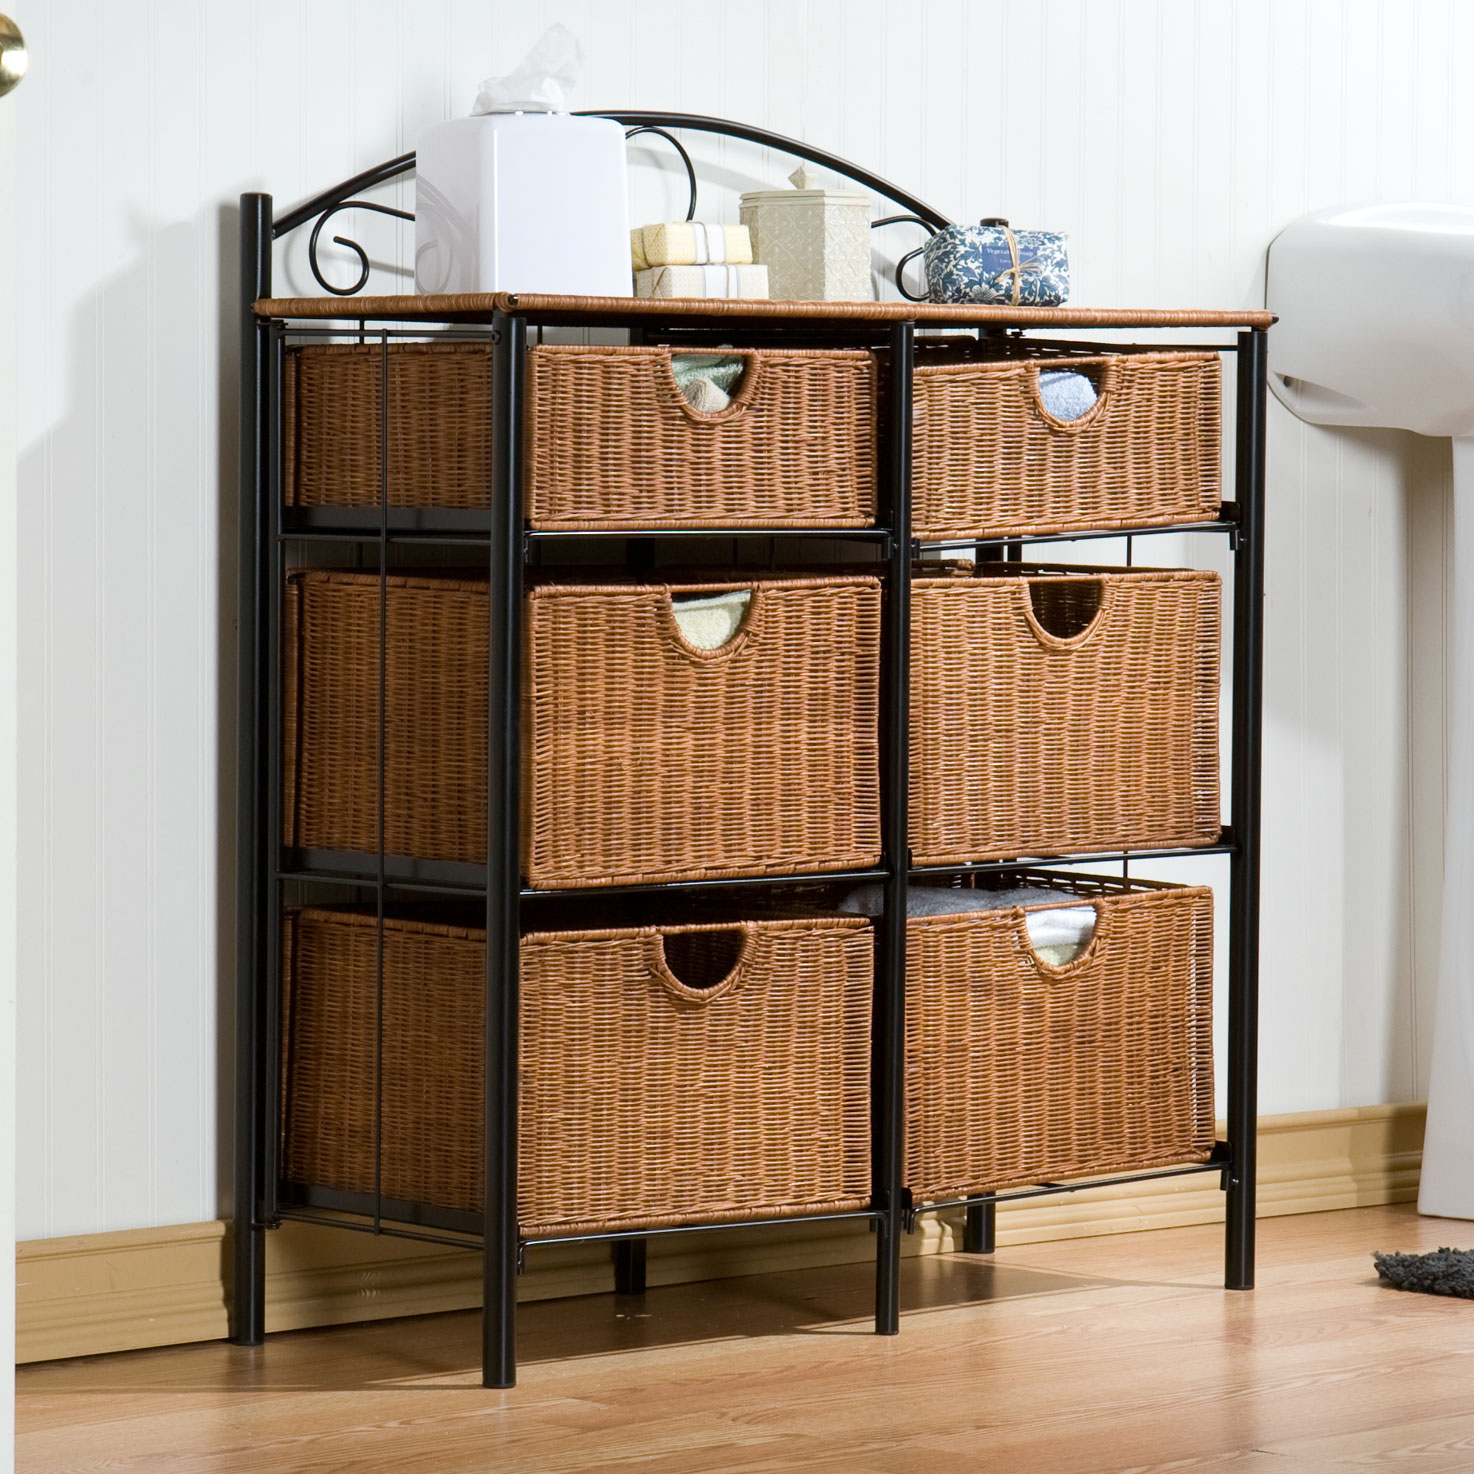 Iron/Wicker Storage Chest, IRON